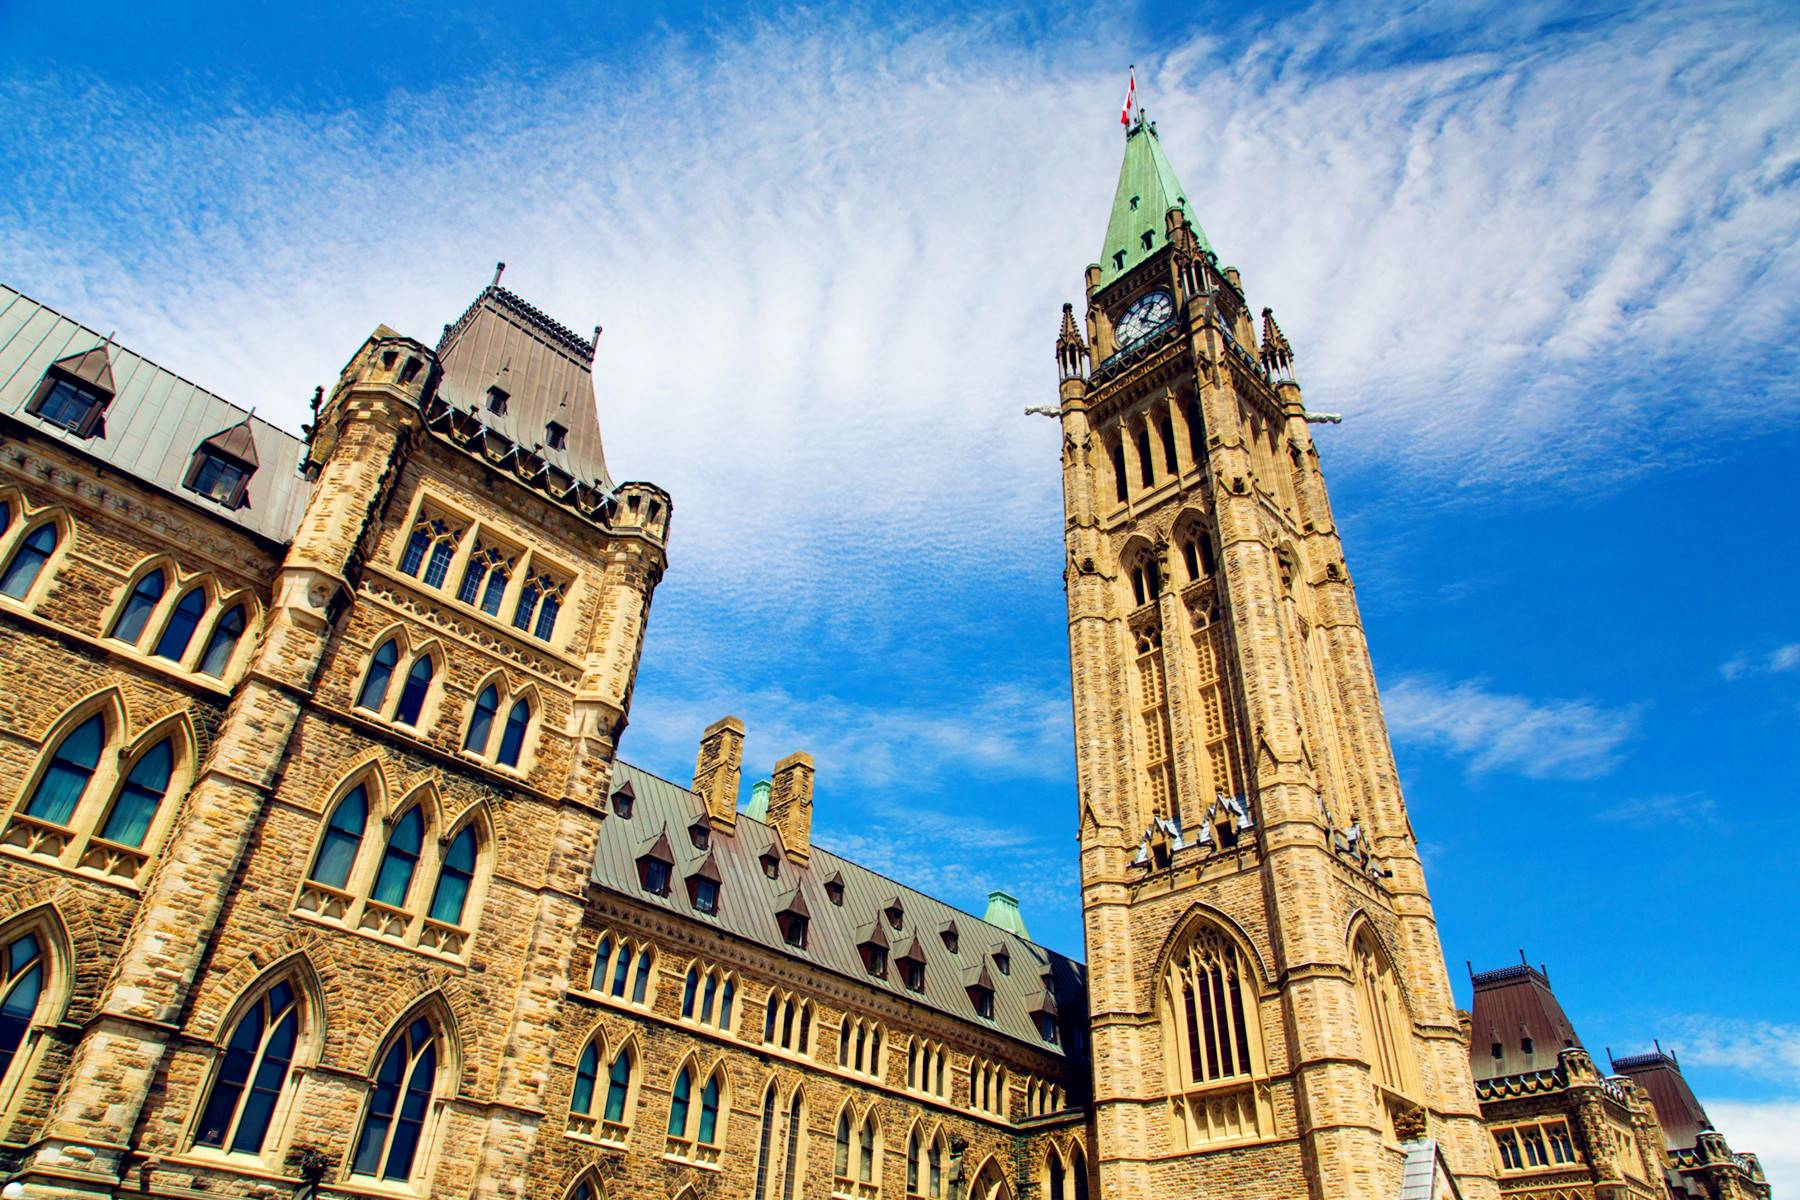 7-Day USA and Canada Tour From Toronto: Thousand Islands, Quebec, NYC, Boston & DC